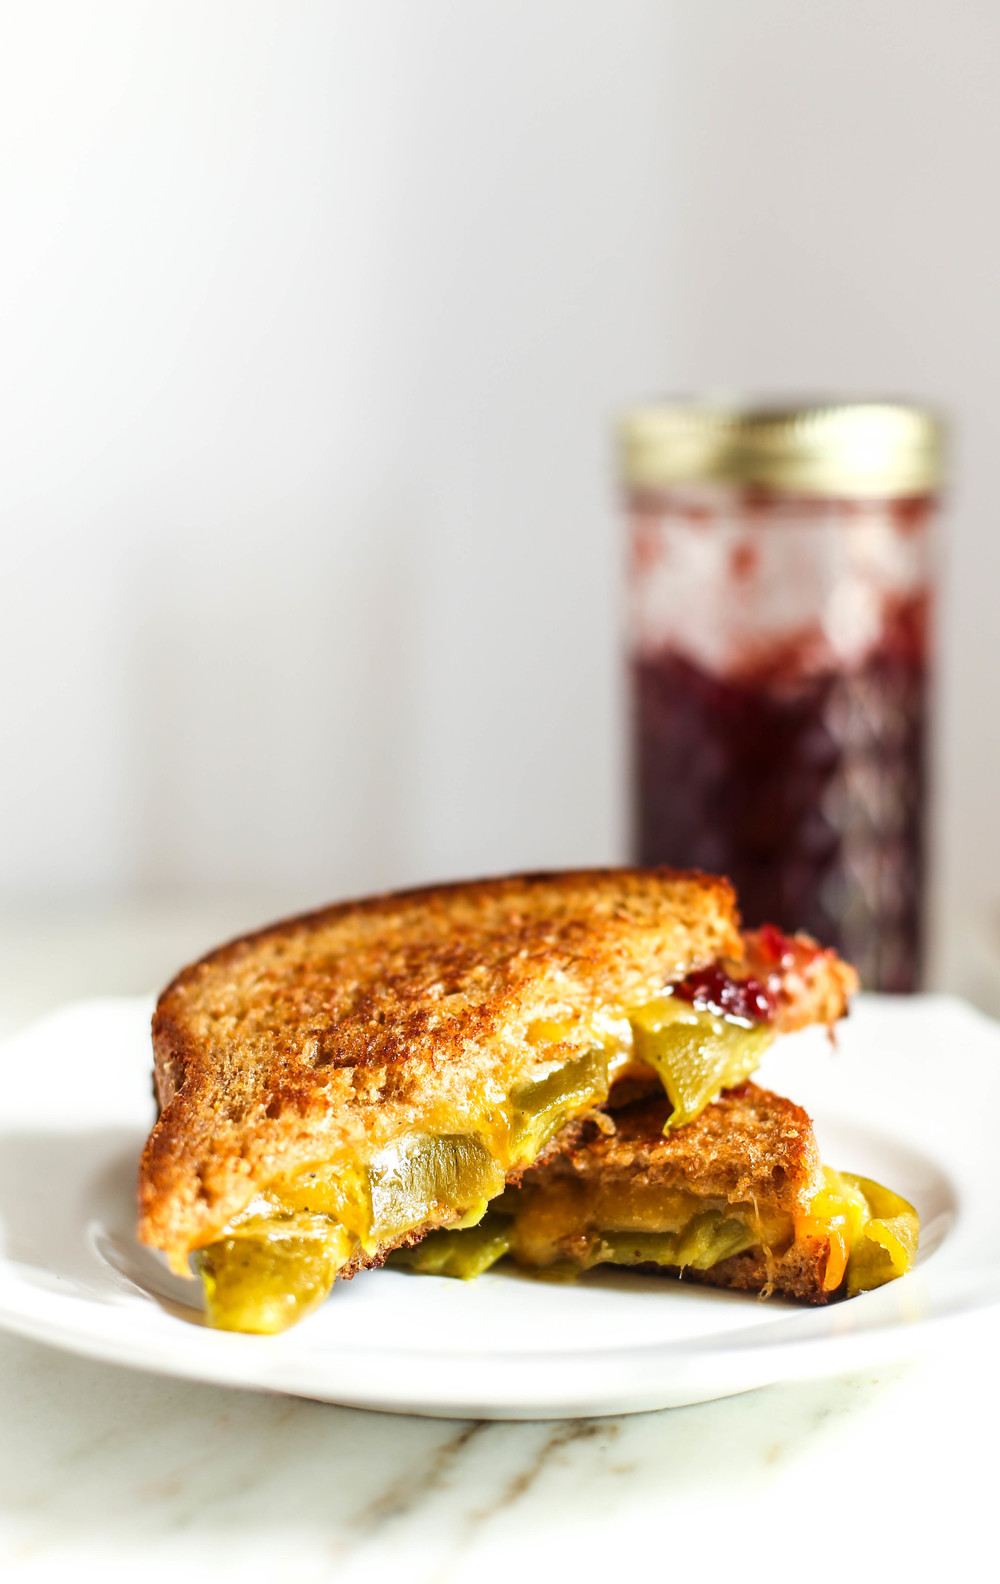 Pueblo Chile Grilled Cheese Sandwich